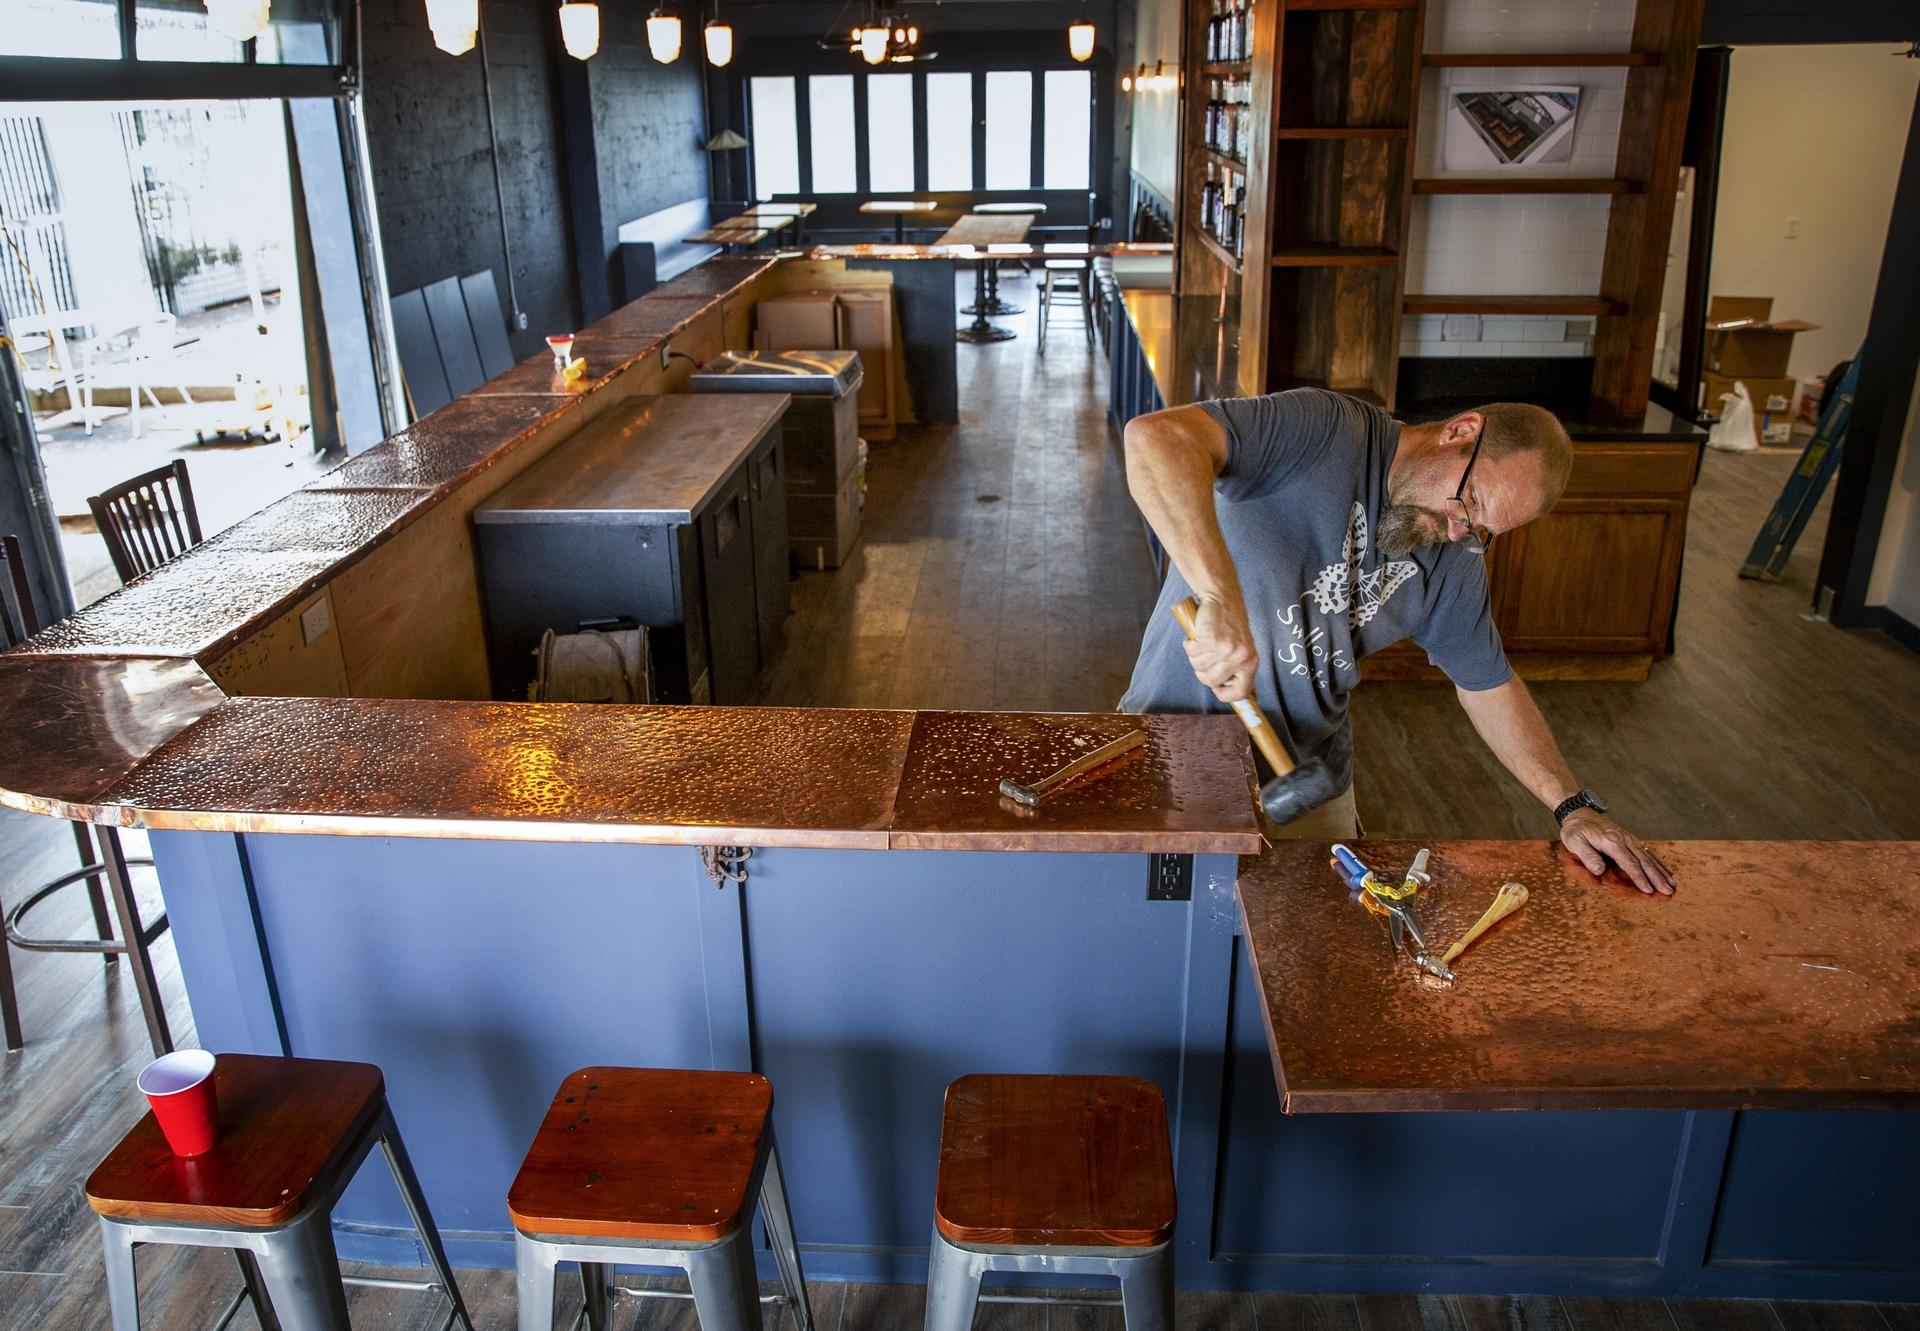 Swallowtail Spirits owner Kevin Barrett works on the bar top in his new retail space and cocktail lounge in Springfield where he will mix a variety of cocktails with his spirits. There is a full bar, outdoor patio and stage for music.